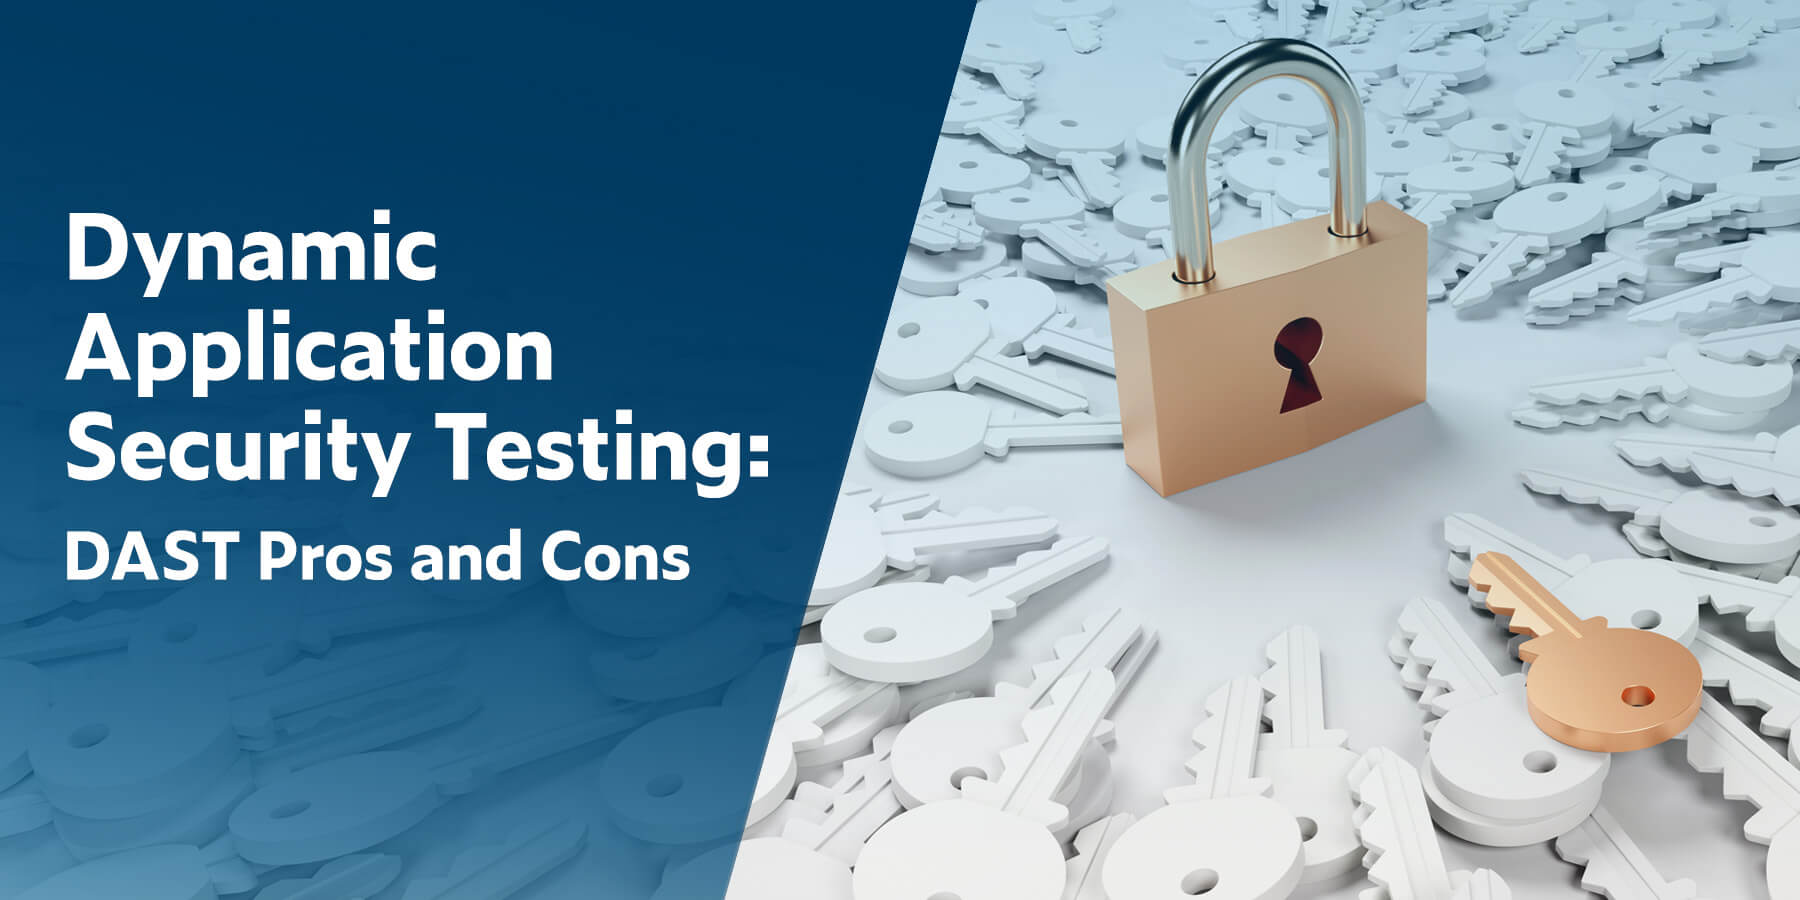 Dynamic Application Security Testing: DAST Pros and Cons